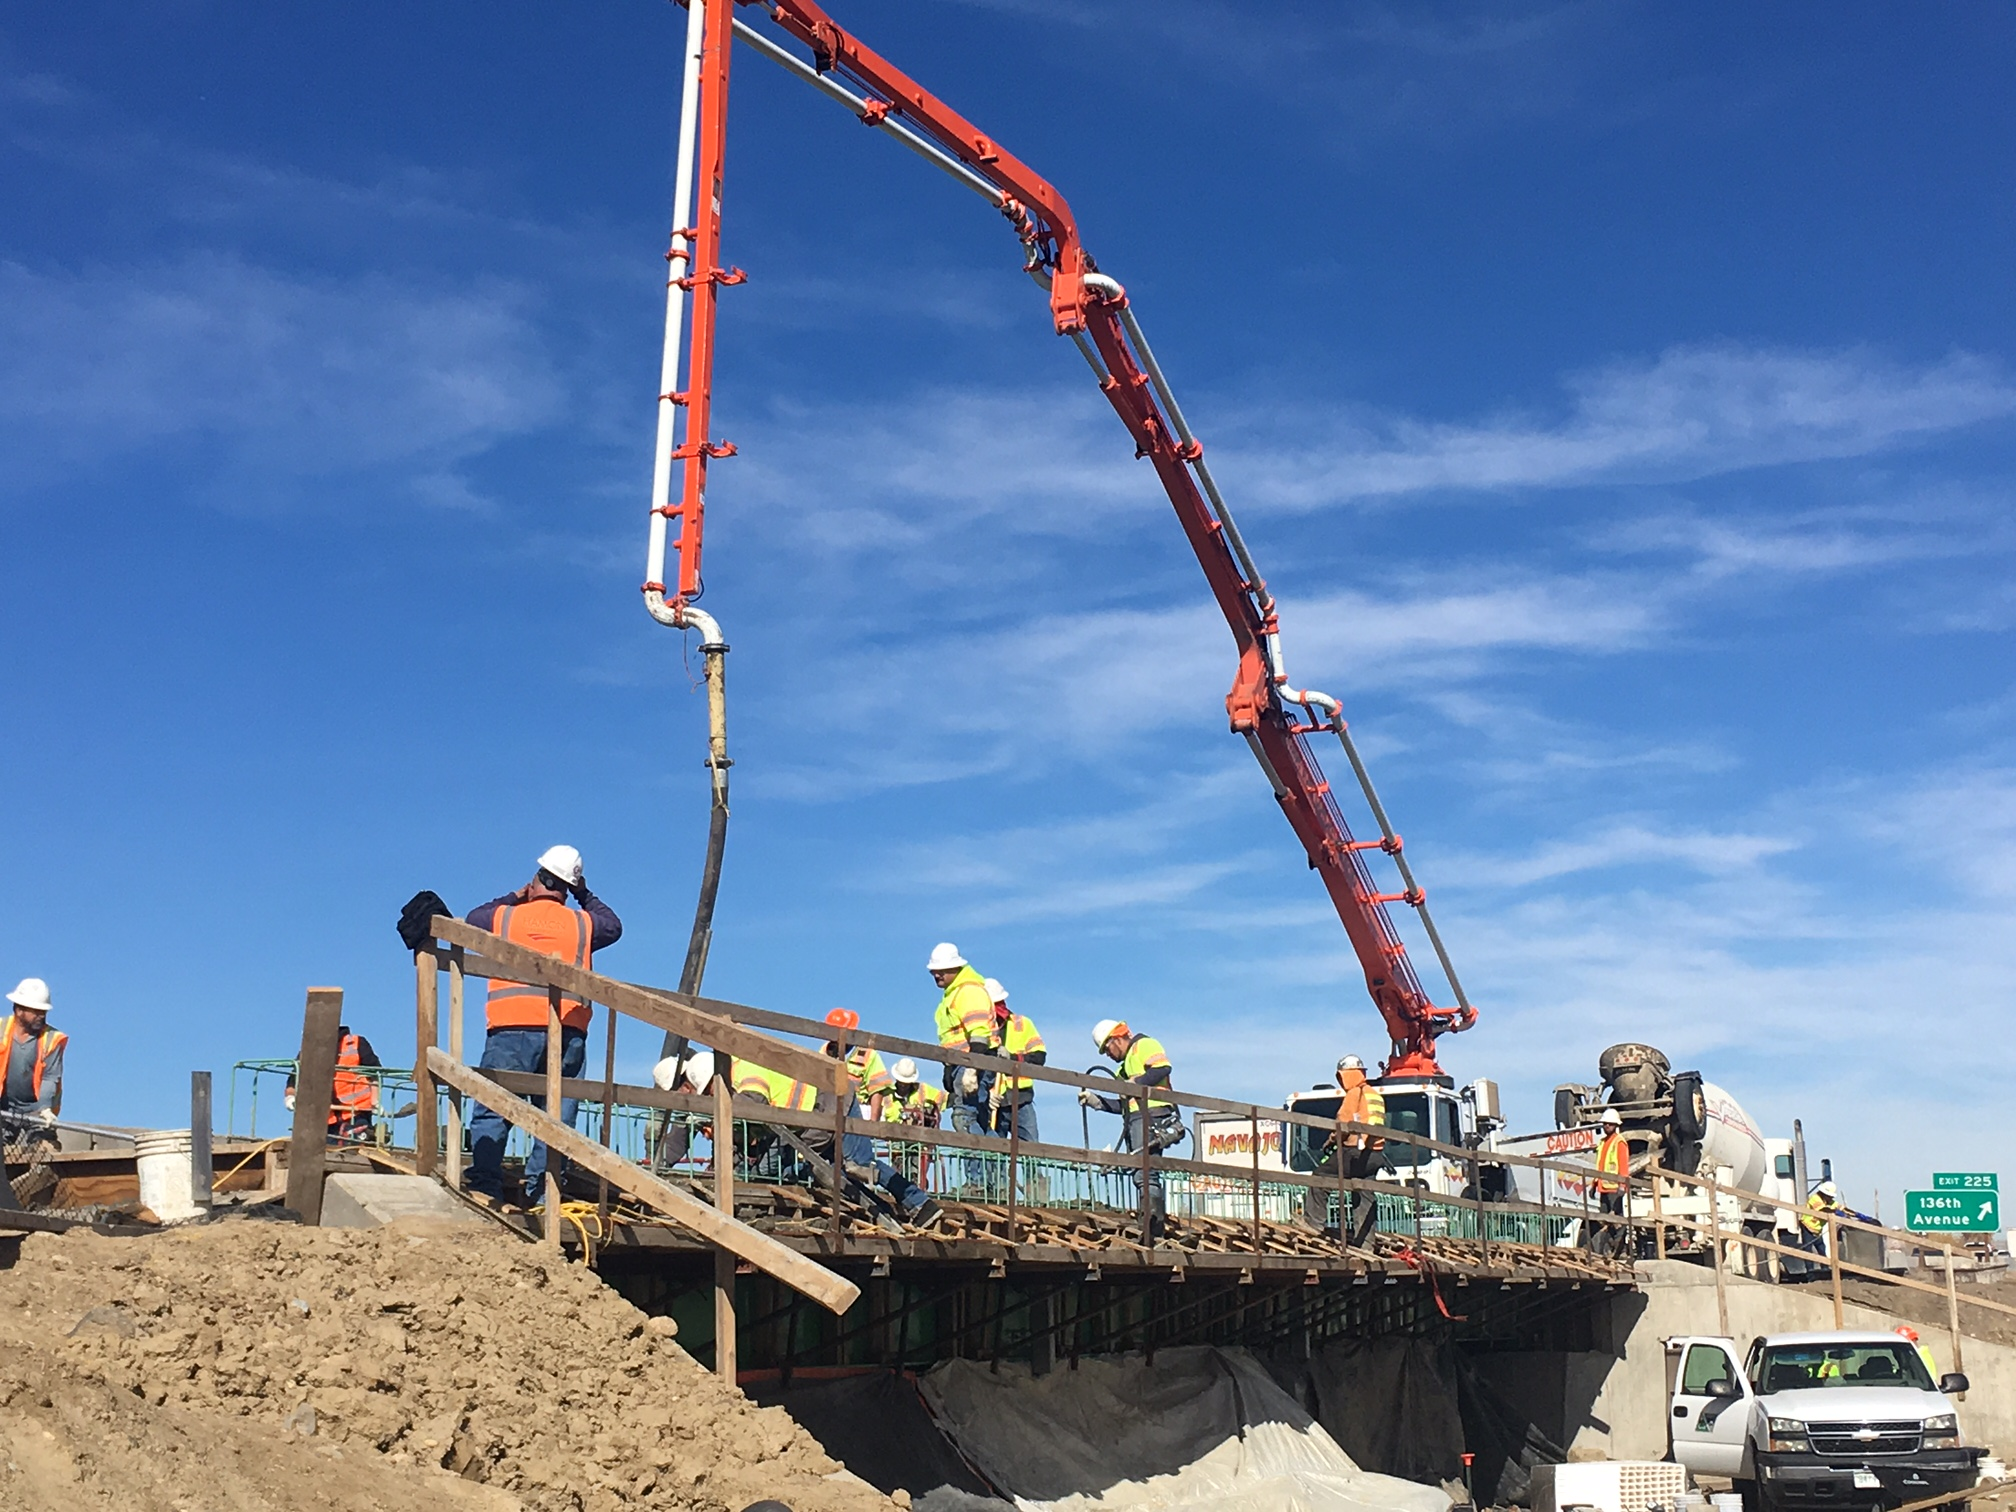 Big Dry Creek Deck Pour 2 - east side I-25 looking north